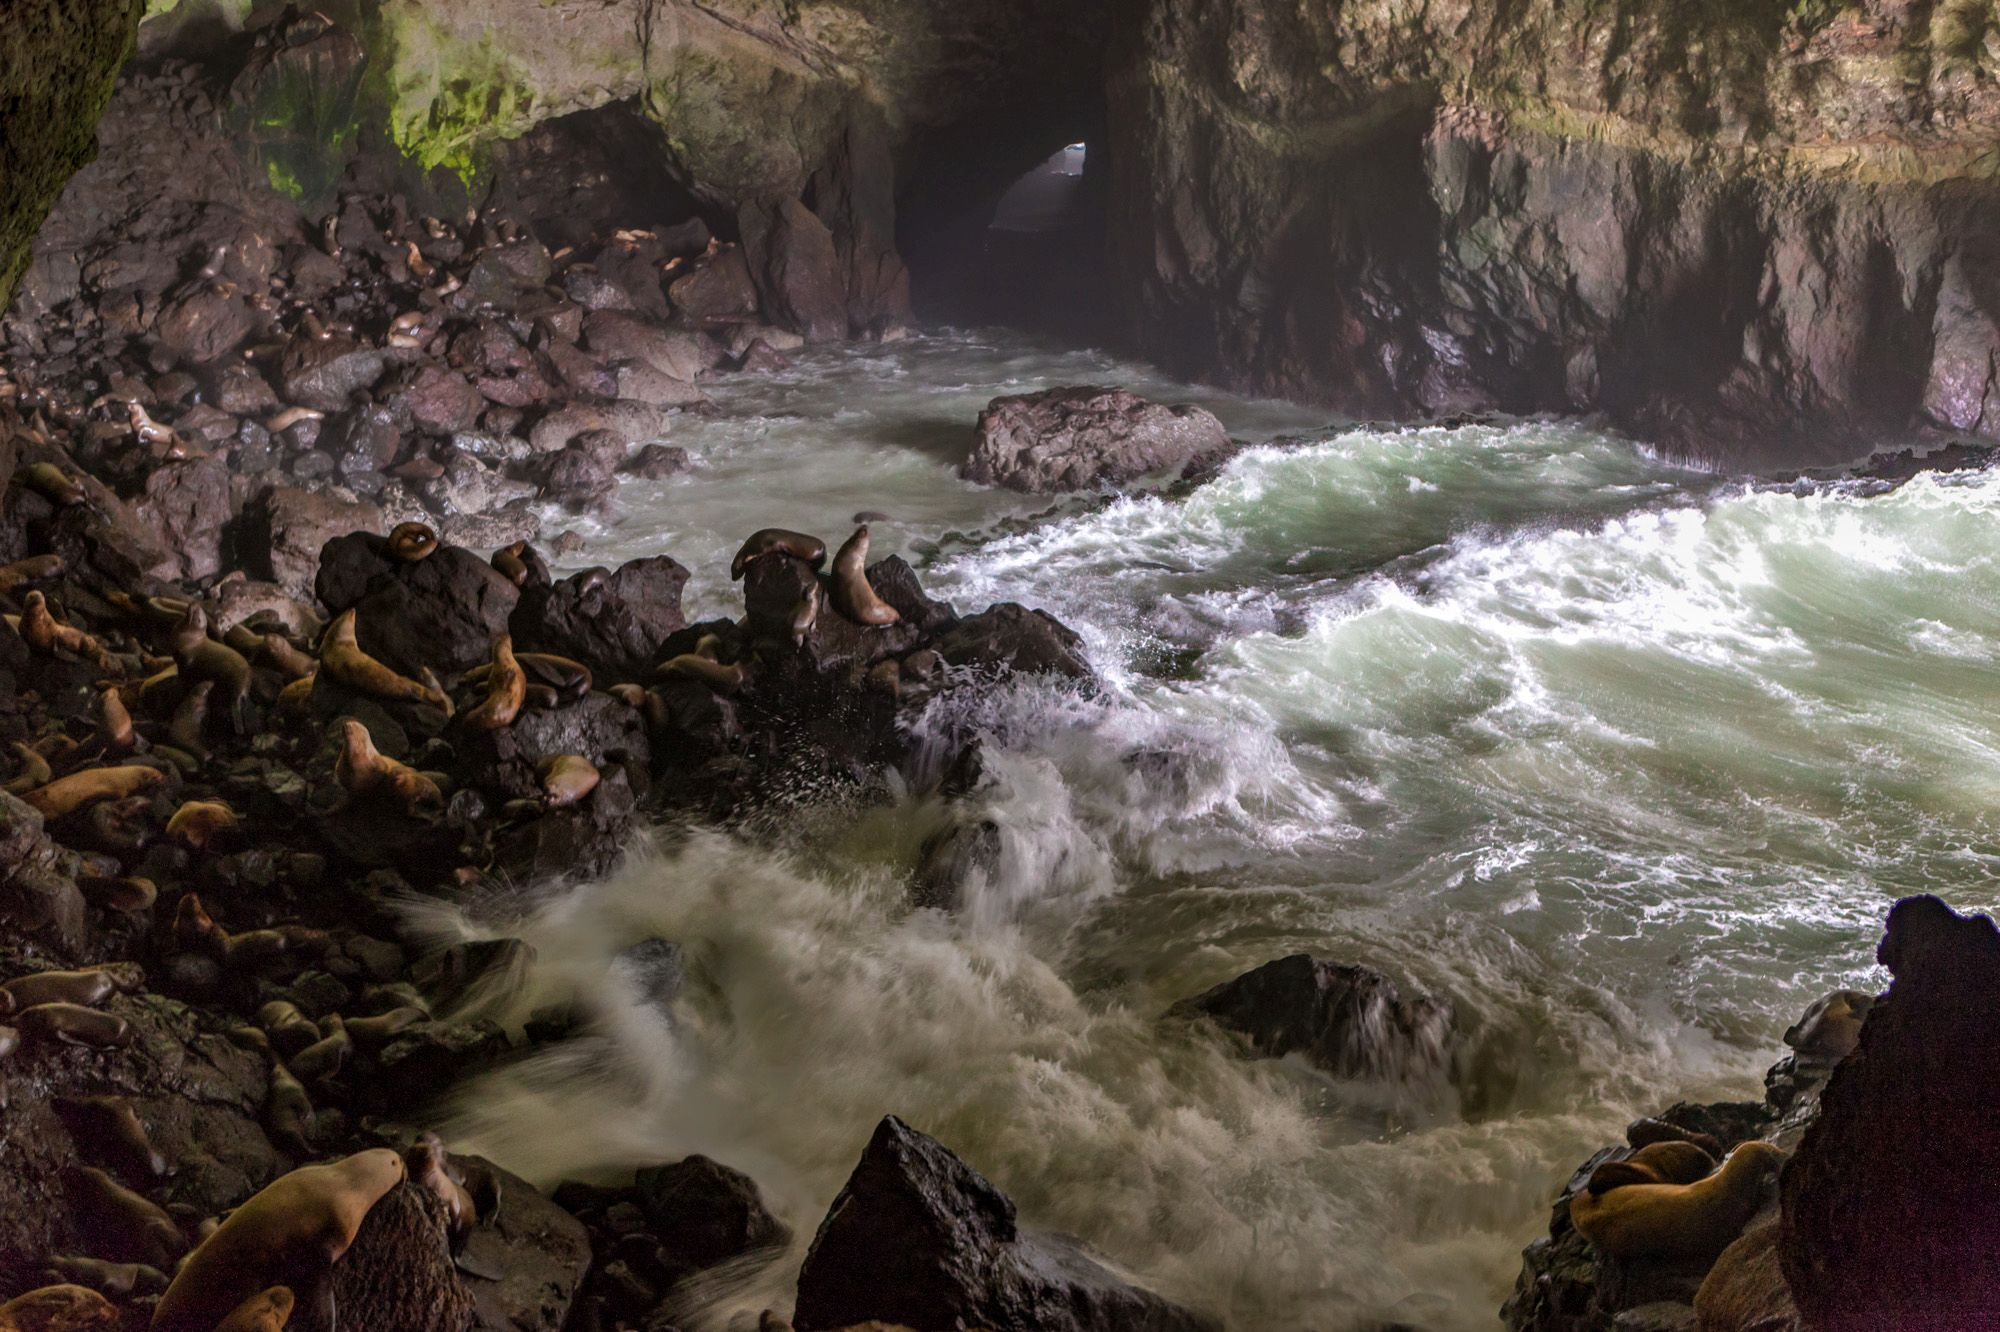 Visit the Sea Lion Caves in Oregon - Gate to Adventures